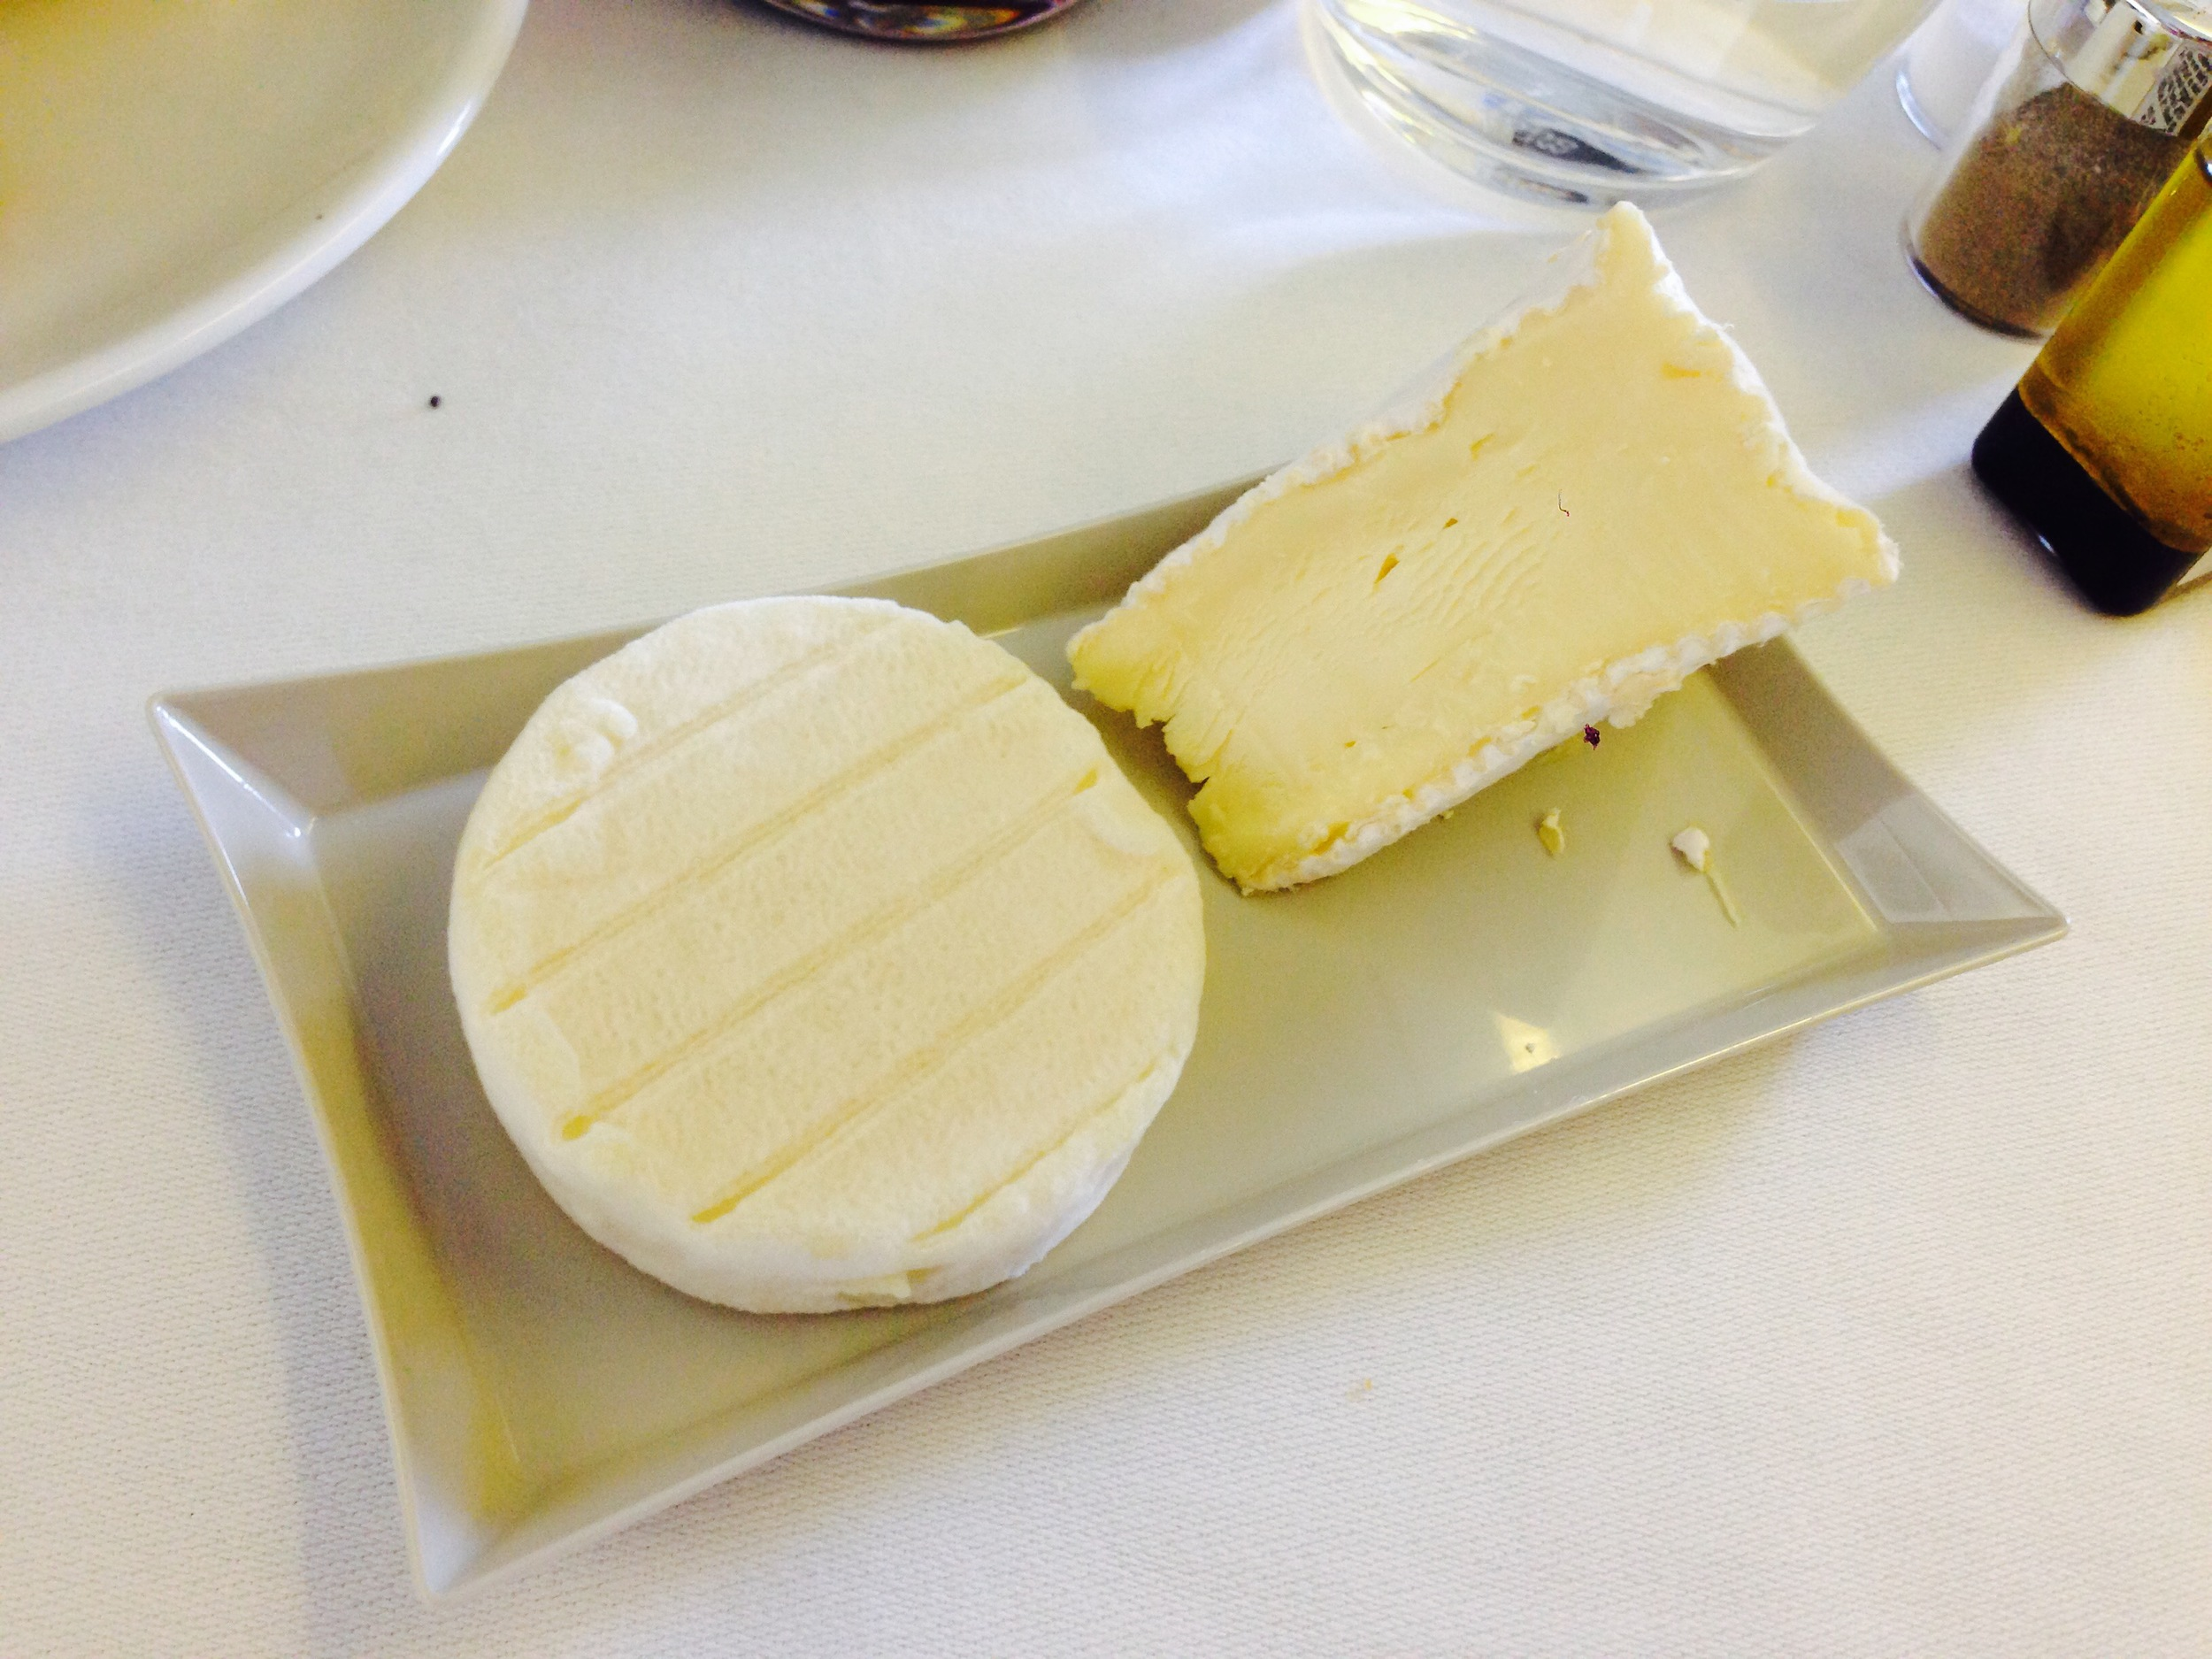 Air France's cheese plate. Give it the swerve.